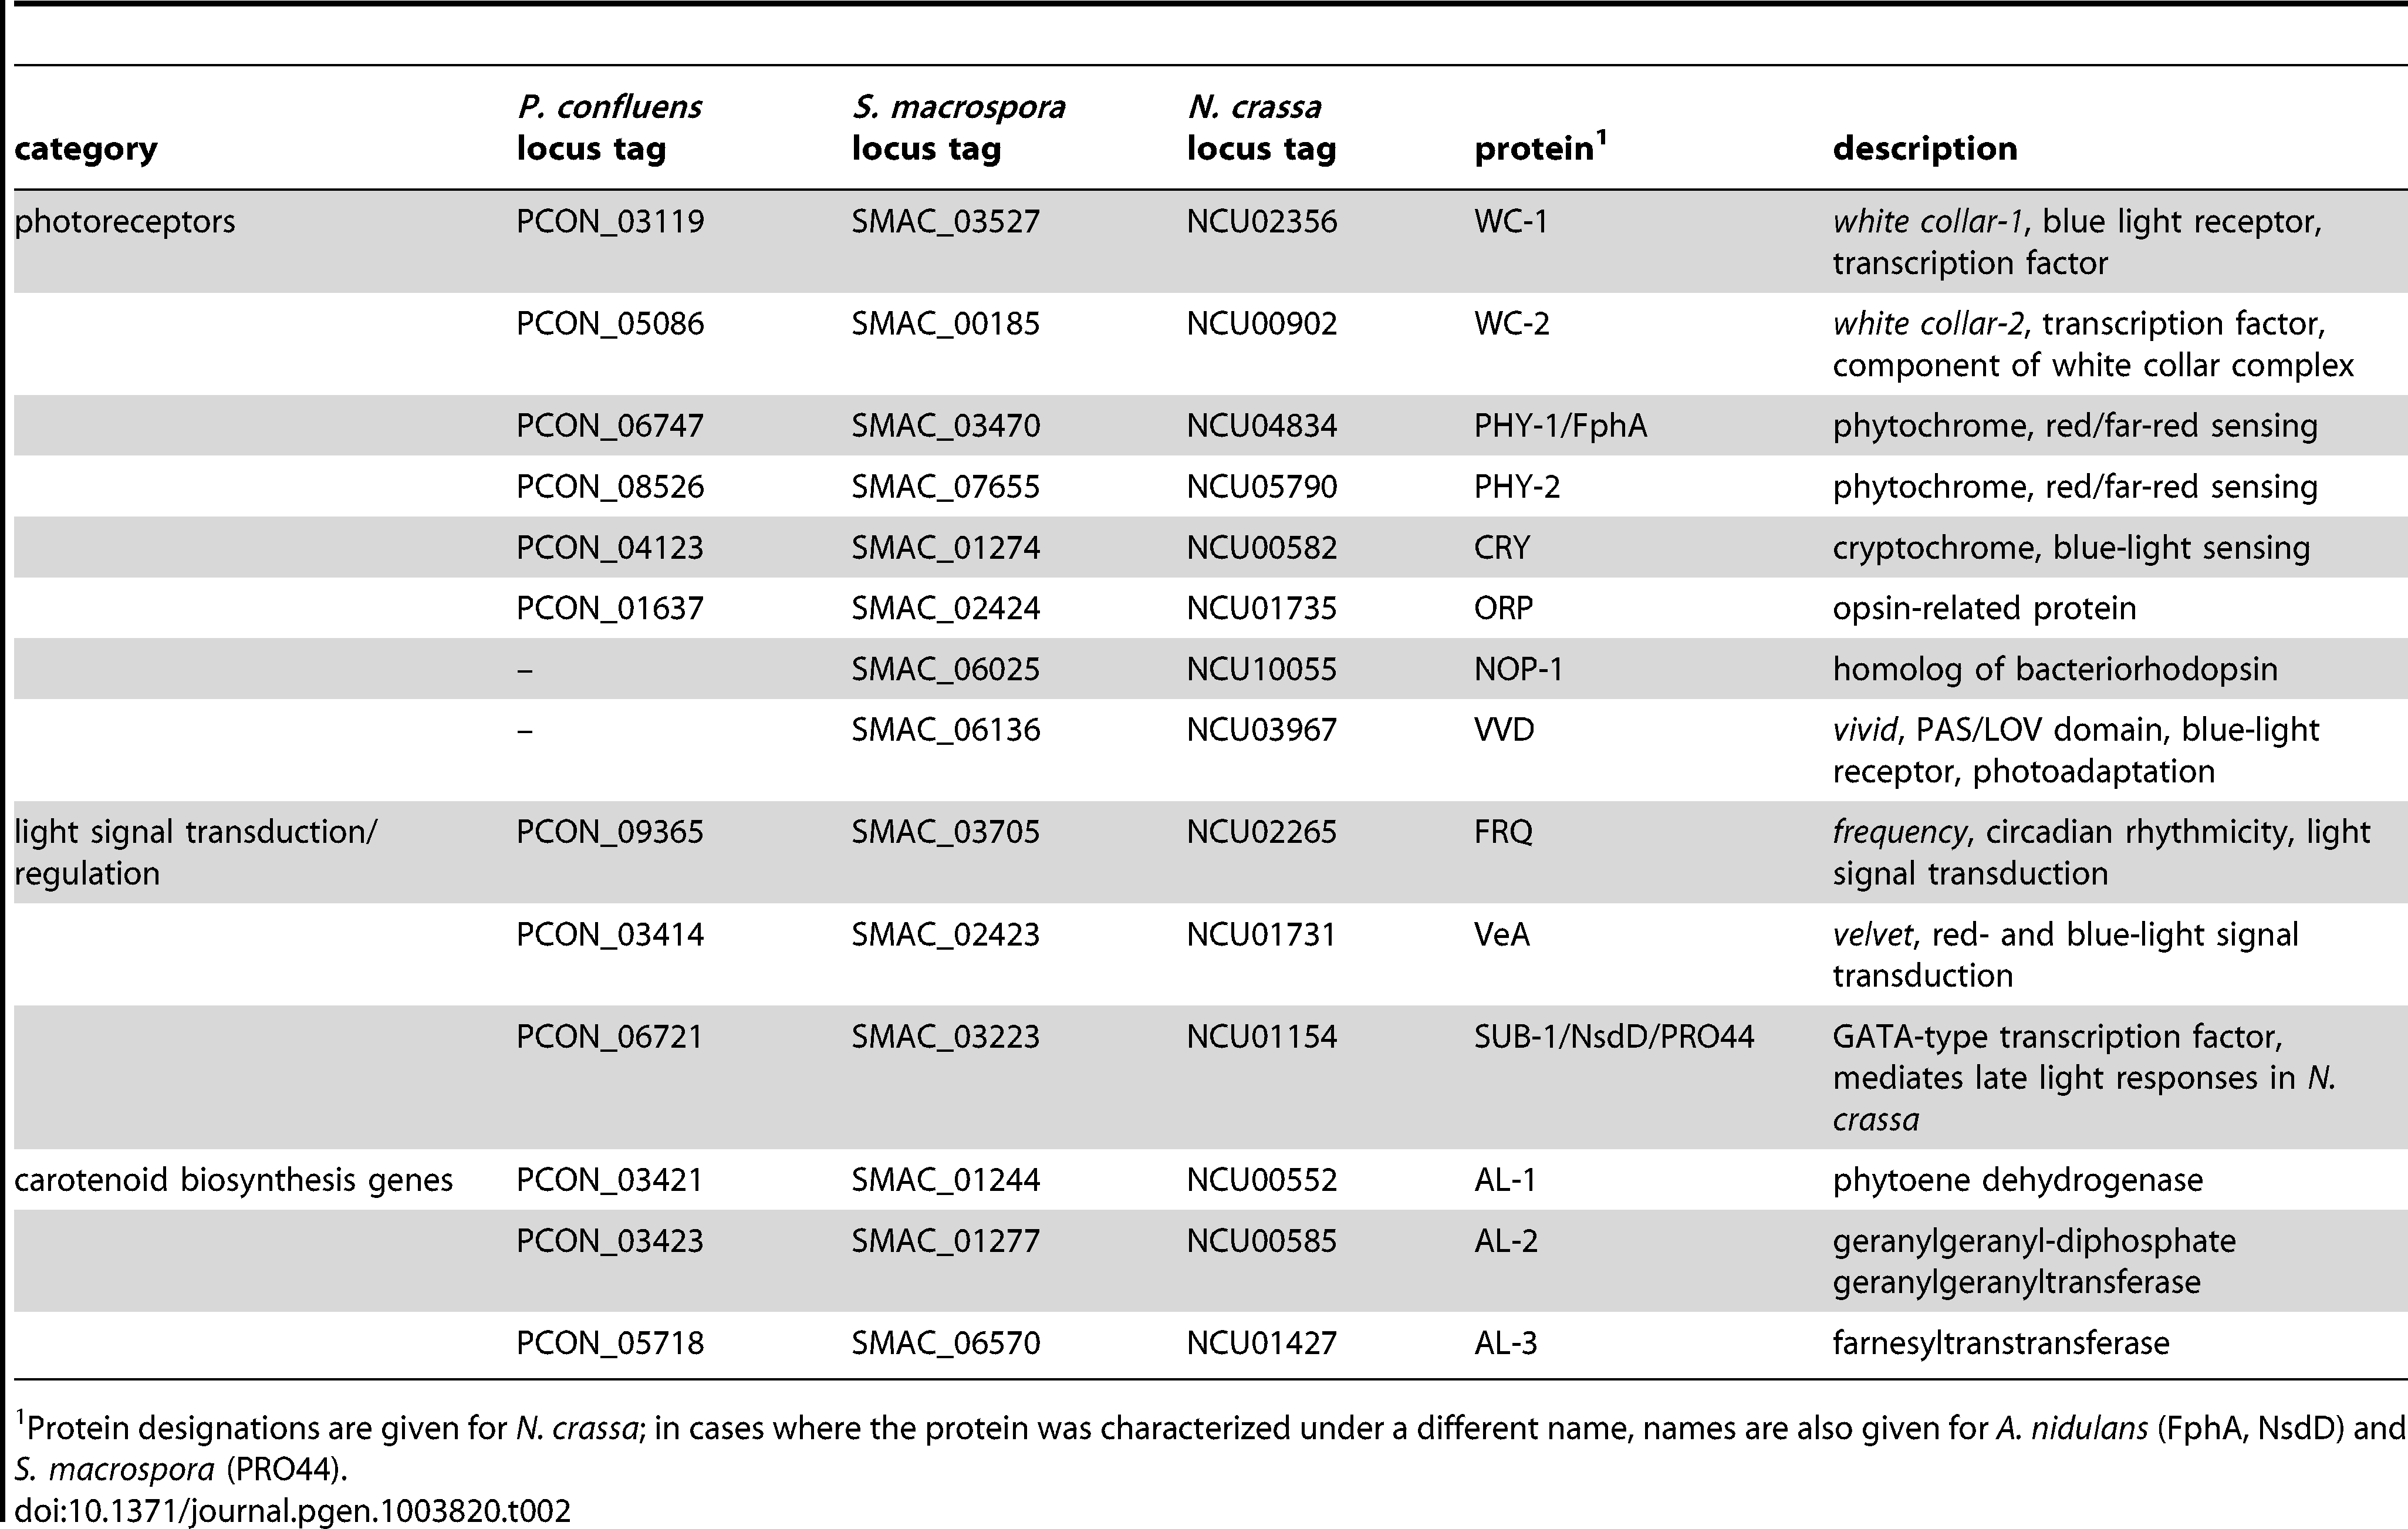 <i>P. confluens</i> homologs of photoreceptor genes, genes involved in light signaling or light-regulated carotenoid biosynthesis genes in other fungi.